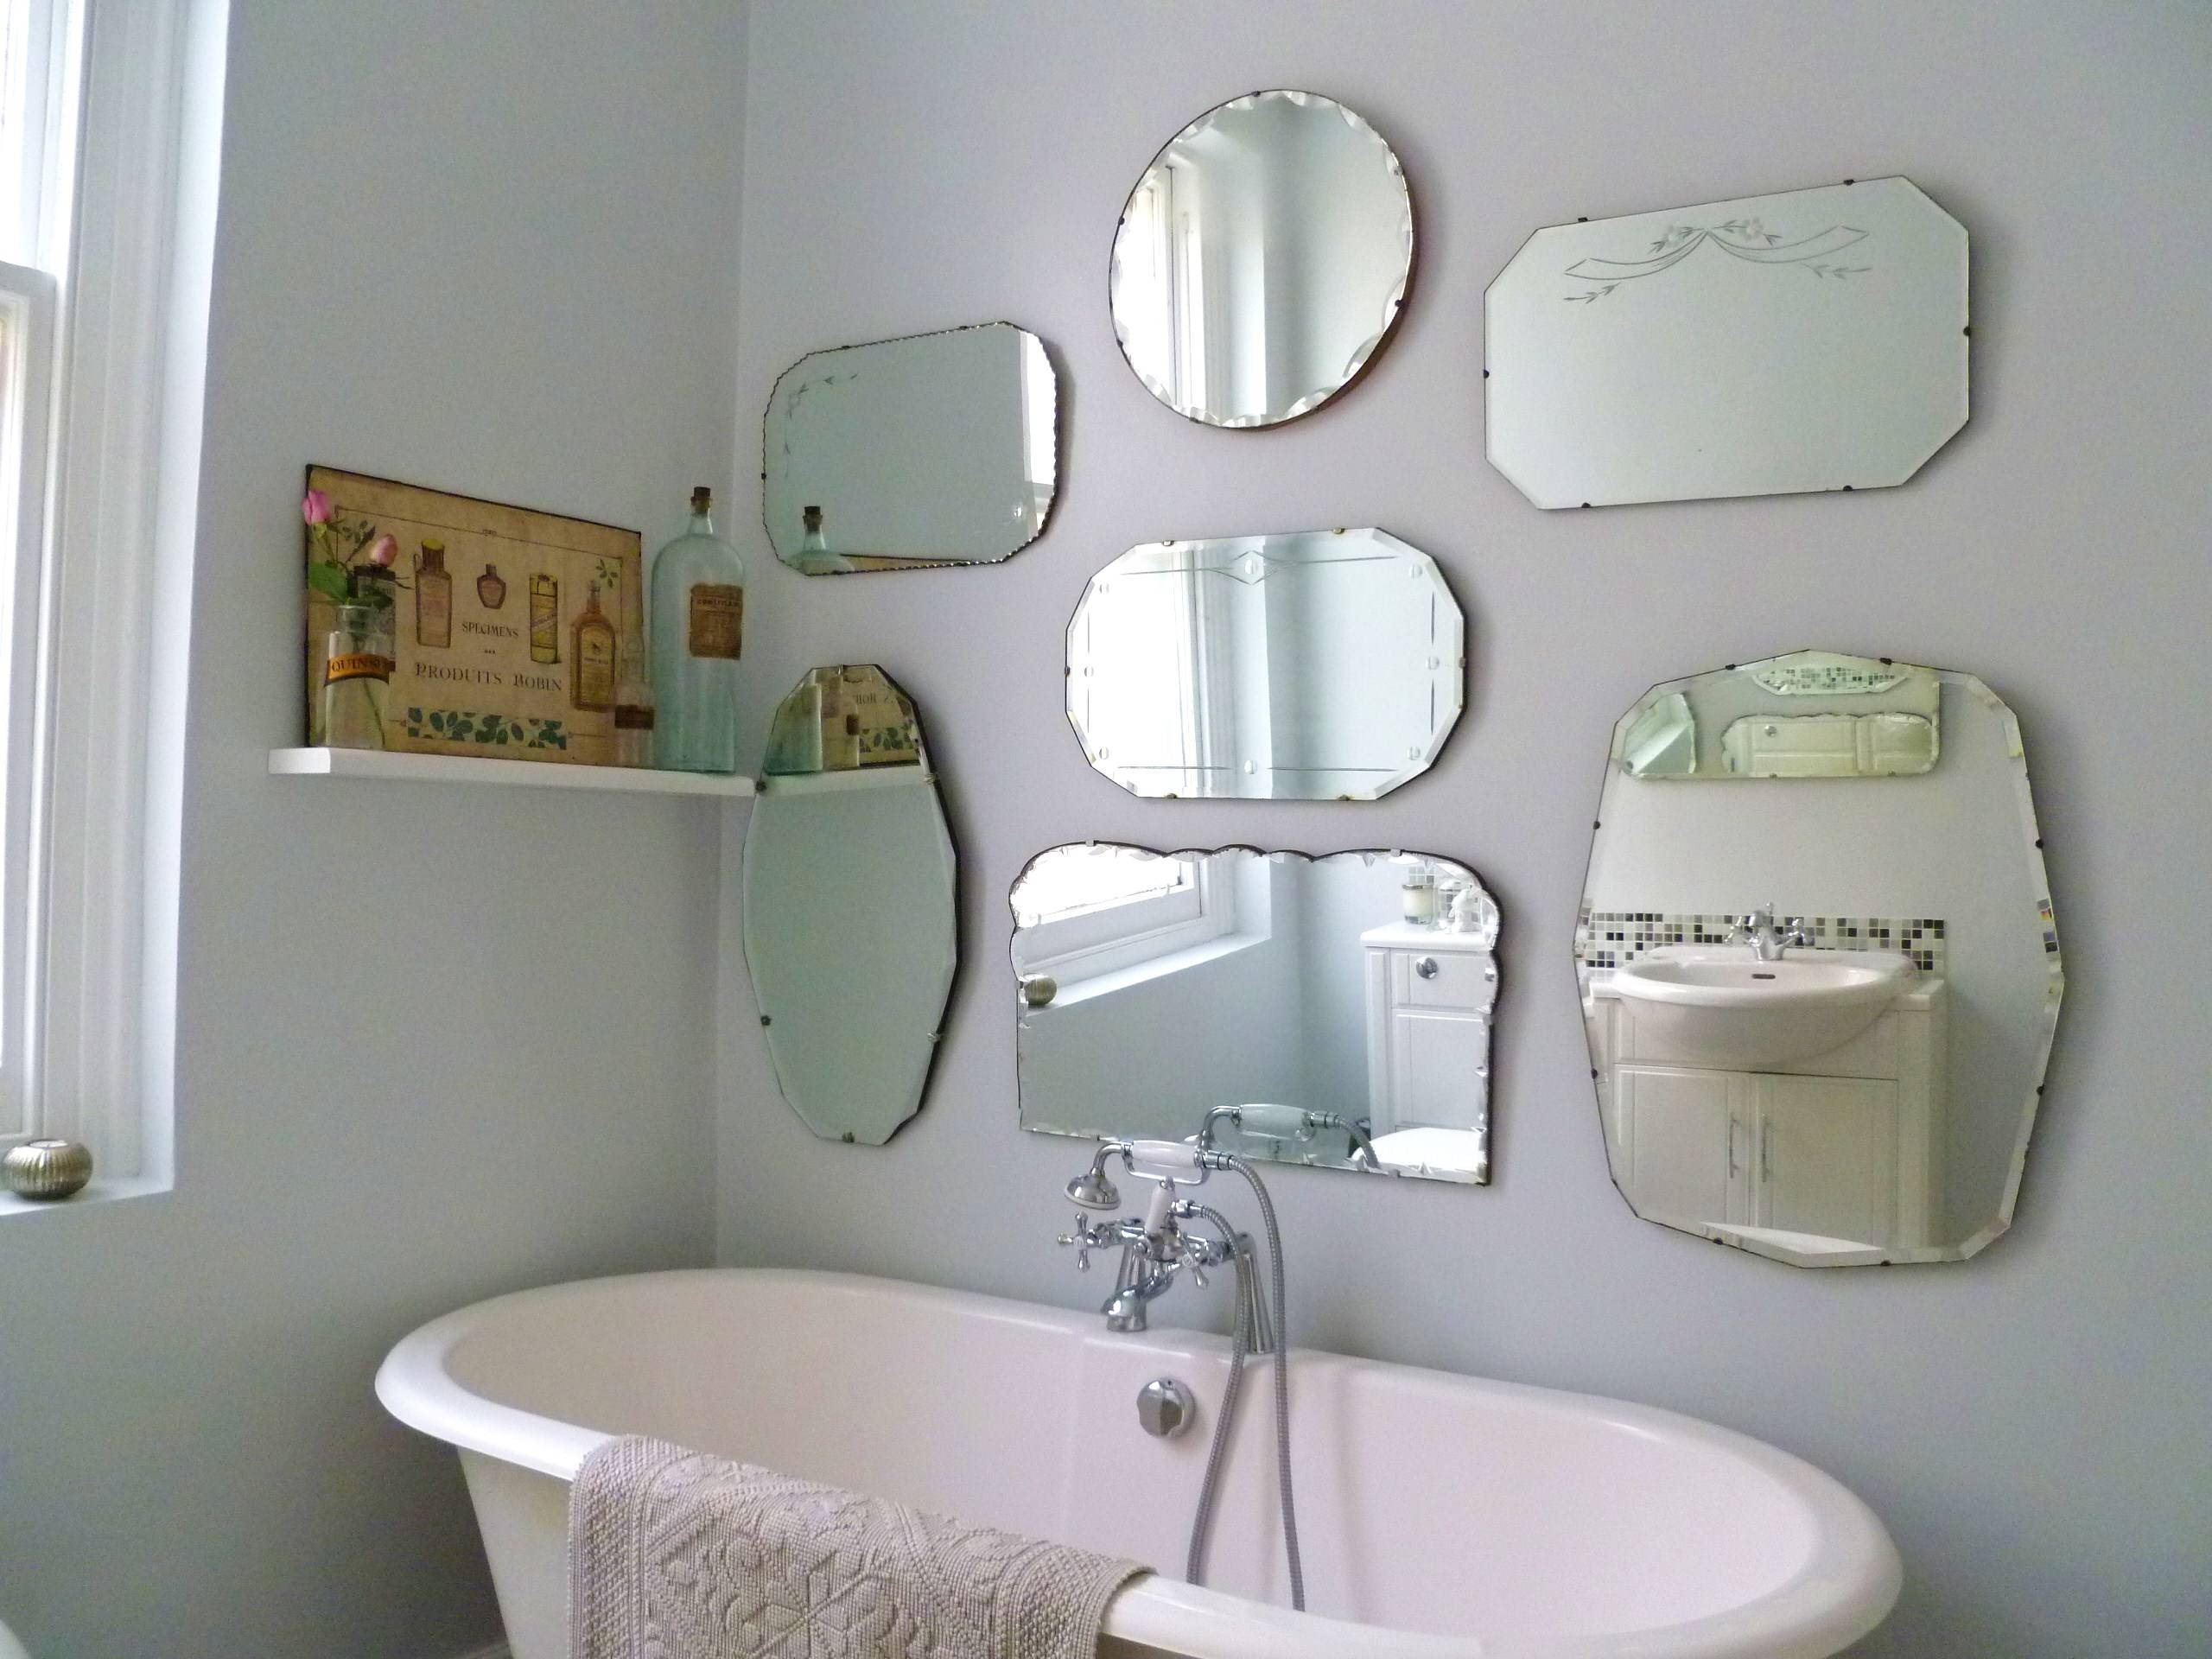 Home Decor: Vintage Bathroom Mirror | Master Bathroom Ideas 37986 pertaining to Antique Bathroom Mirrors (Image 14 of 15)